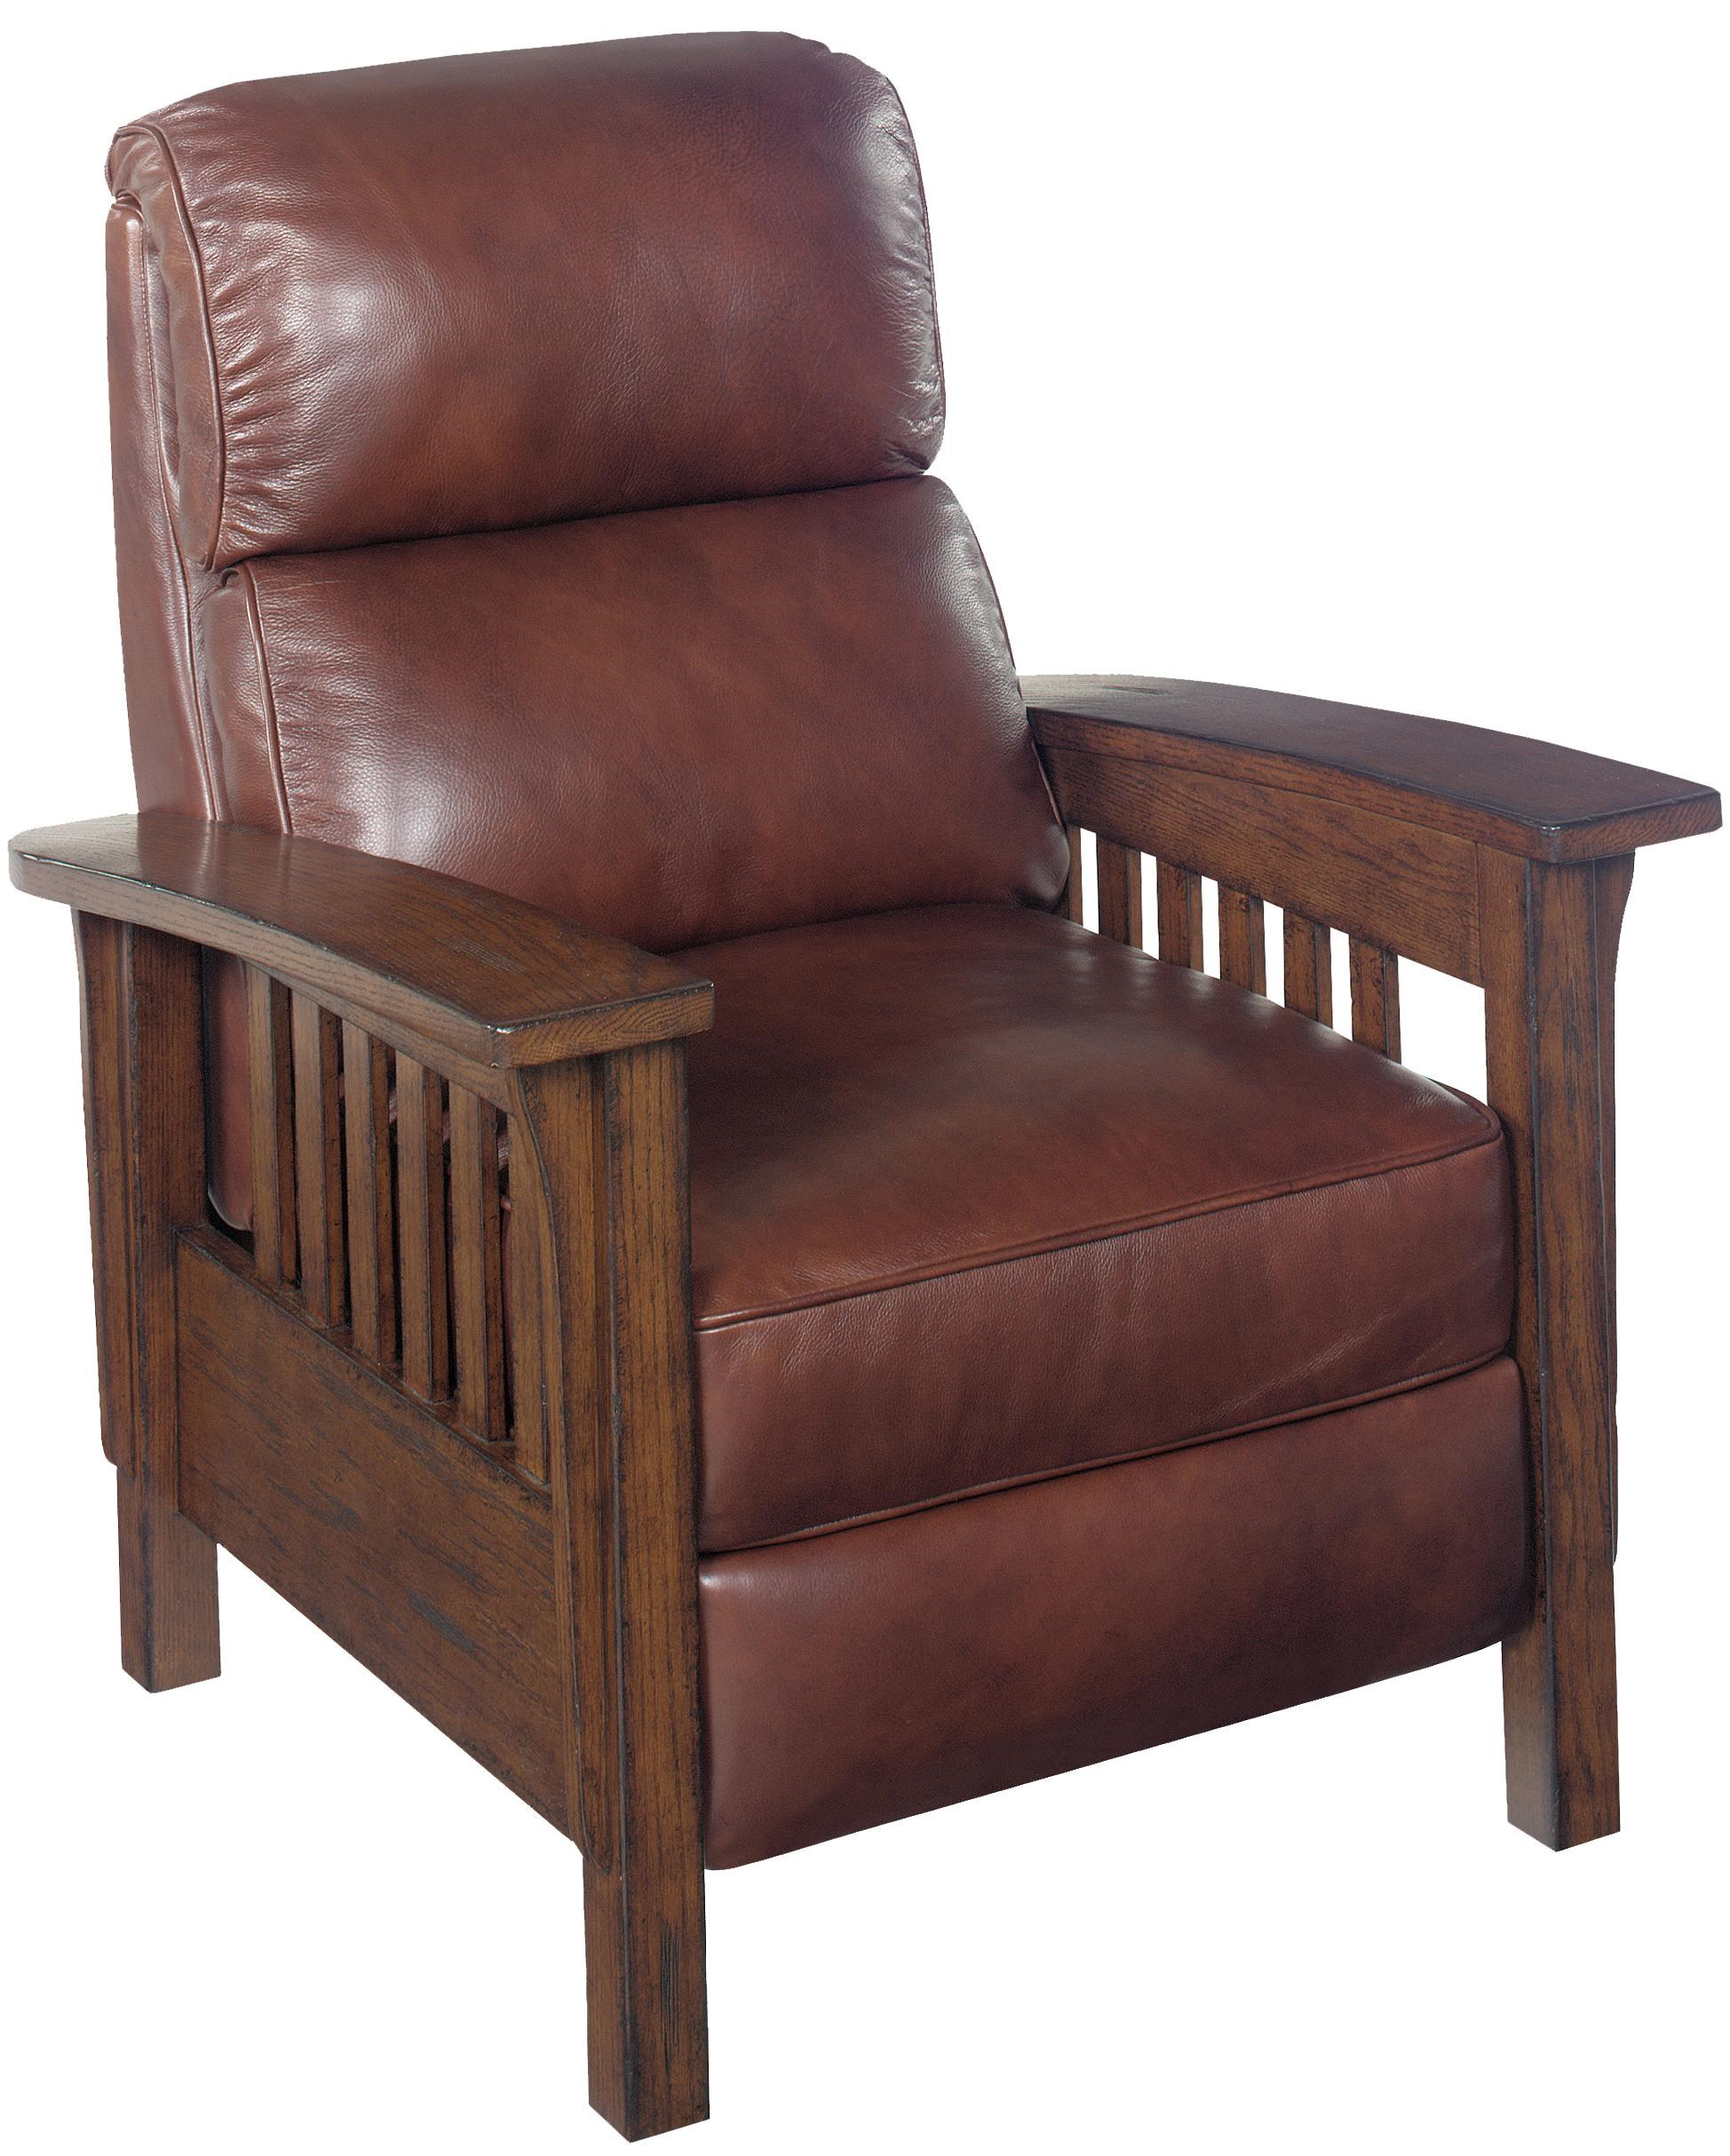 hooker furniture reclining chairs rc220089 mission high leg recliner - Mission Style Recliner